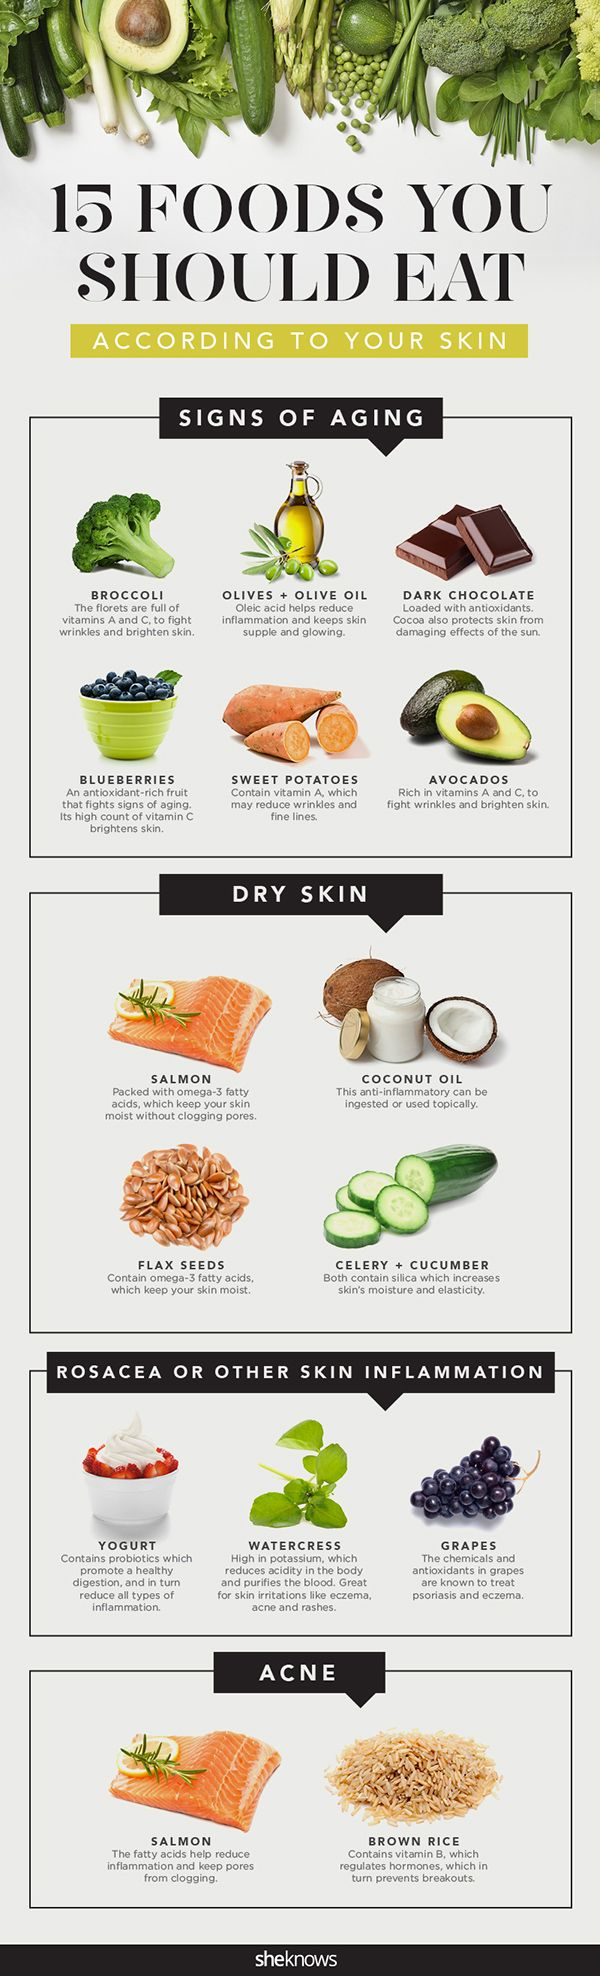 15 Food You Should Eat For Aging Skin Dry Skin Skin Inflammation Acne Foods For Healthy Skin Food Food For Dry Skin